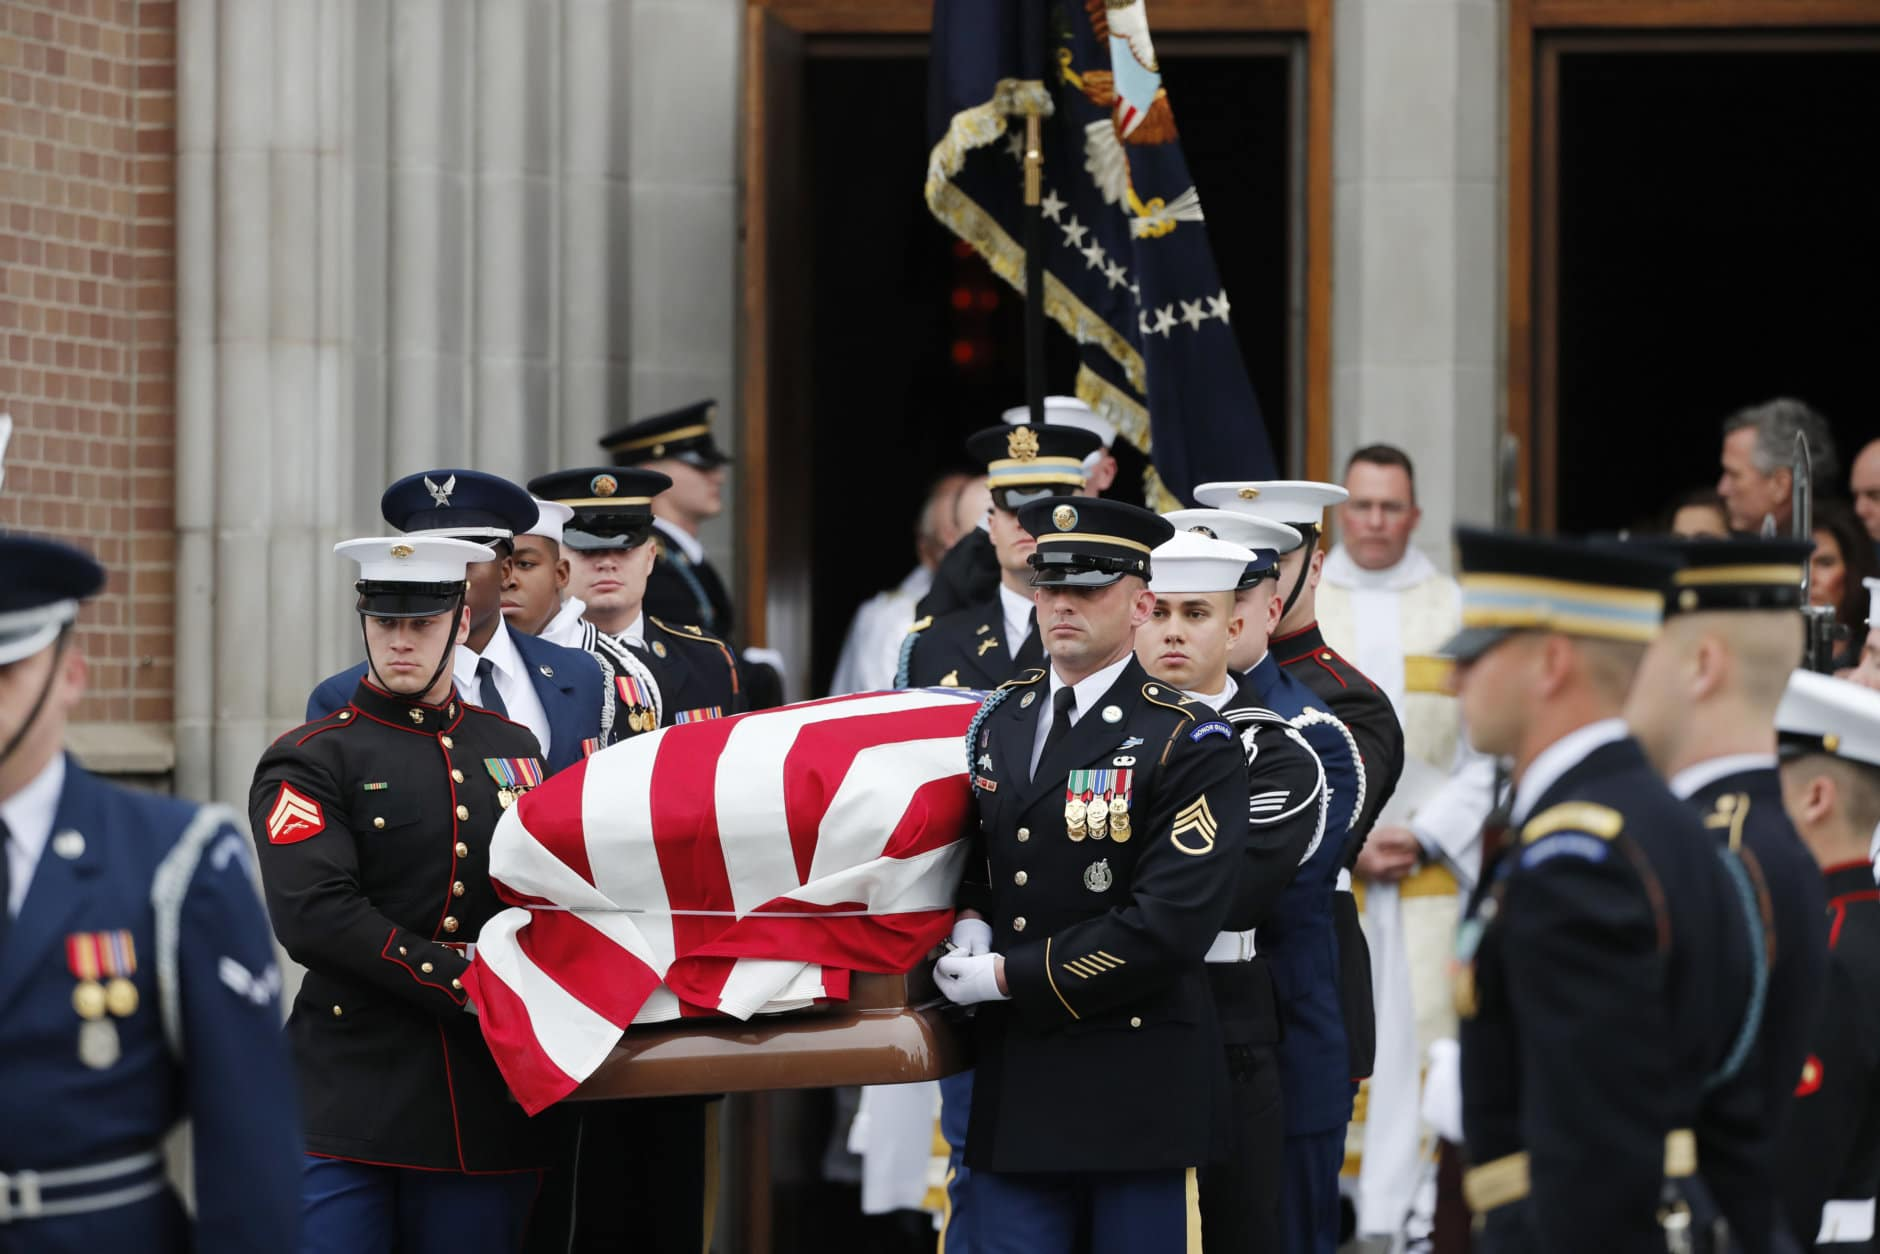 A military honor guard carries the flag-draped casket of former President George H.W. Bush from St. Martin's Episcopal Church following his funeral service Thursday, Dec. 6, 2018, in Houston. (AP Photo/Gerald Herbert)